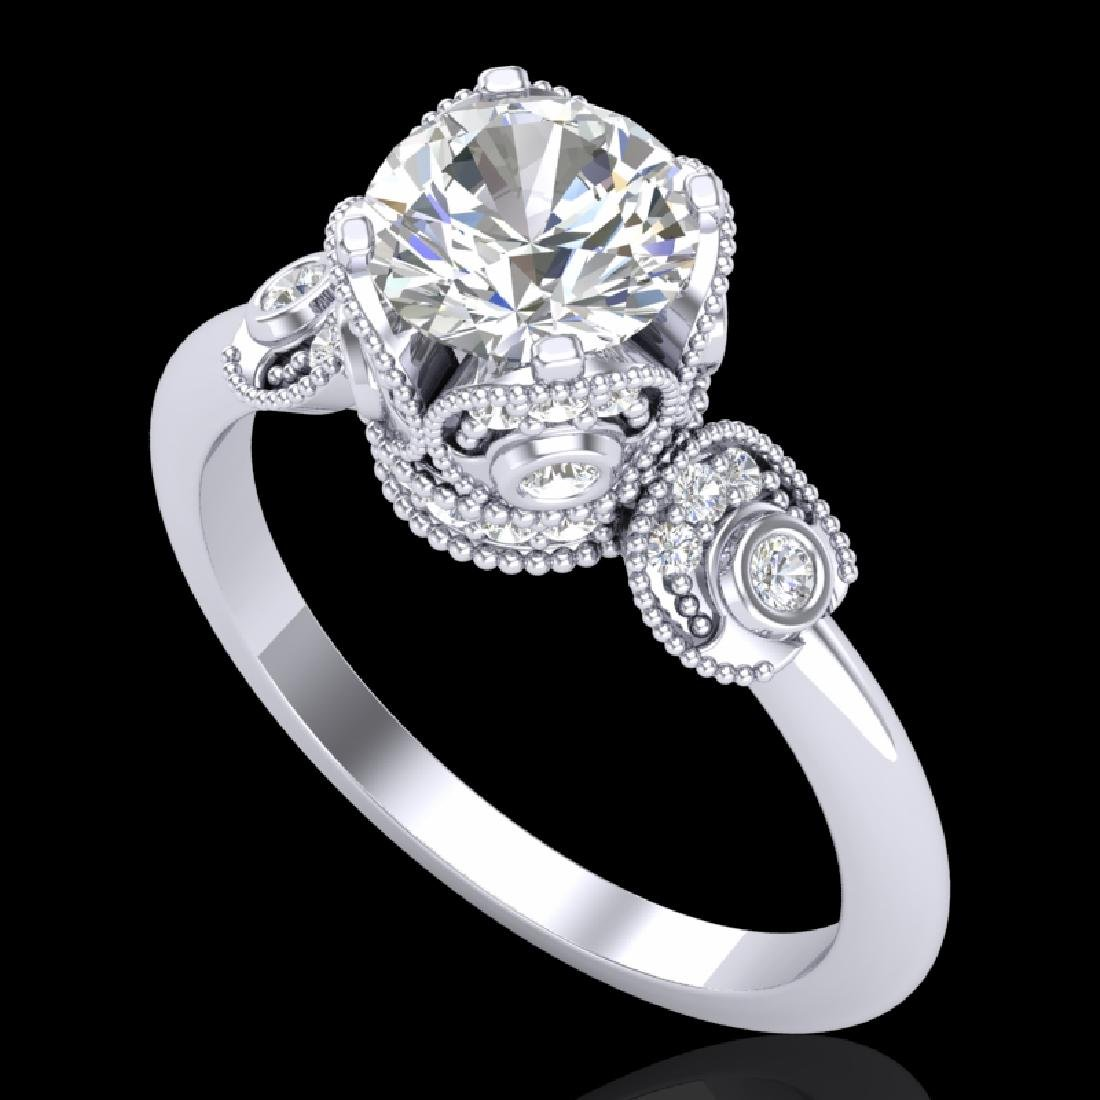 1.75 CTW VS/SI Diamond Art Deco Ring 18K White Gold